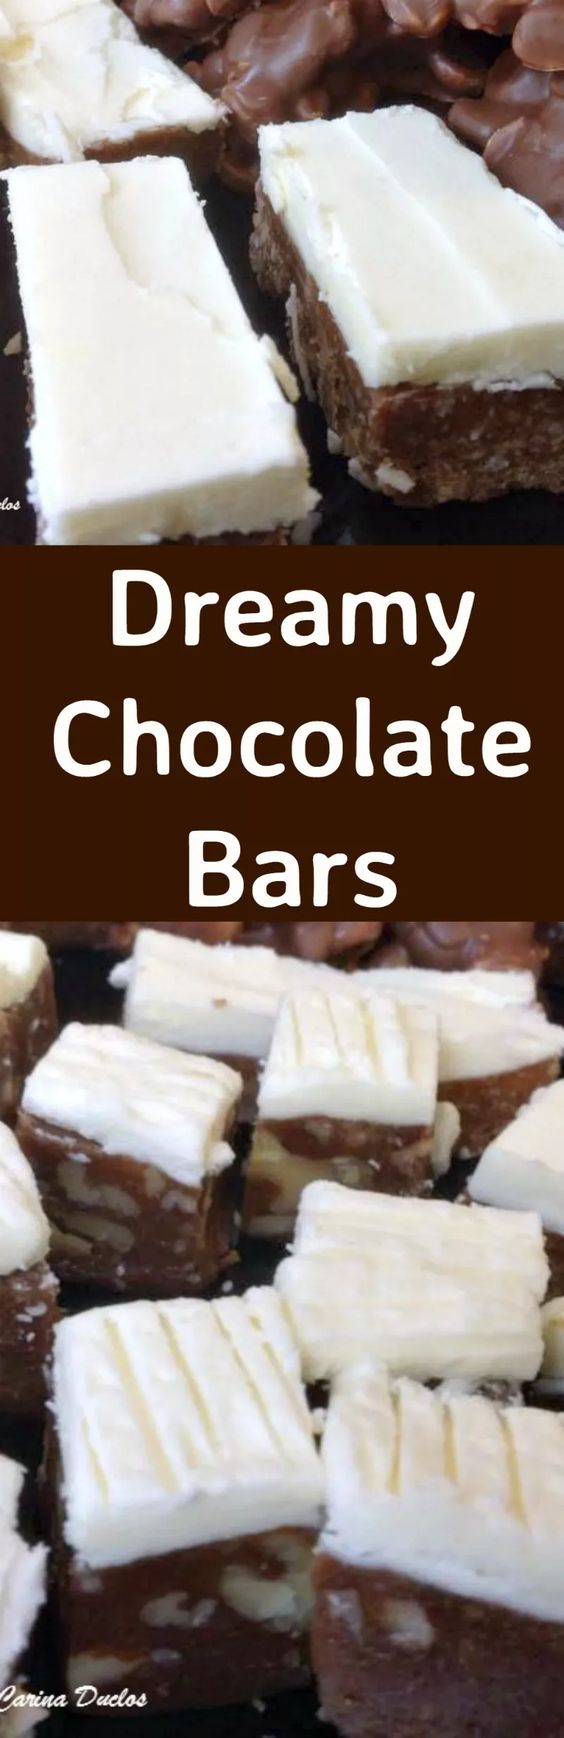 Dreamy Chocolate Bars. These are a lovely No Bake sweet treat and so popular! Easy to make, and perfect for snacks, parties and the holidays! | Lovefoodies.com